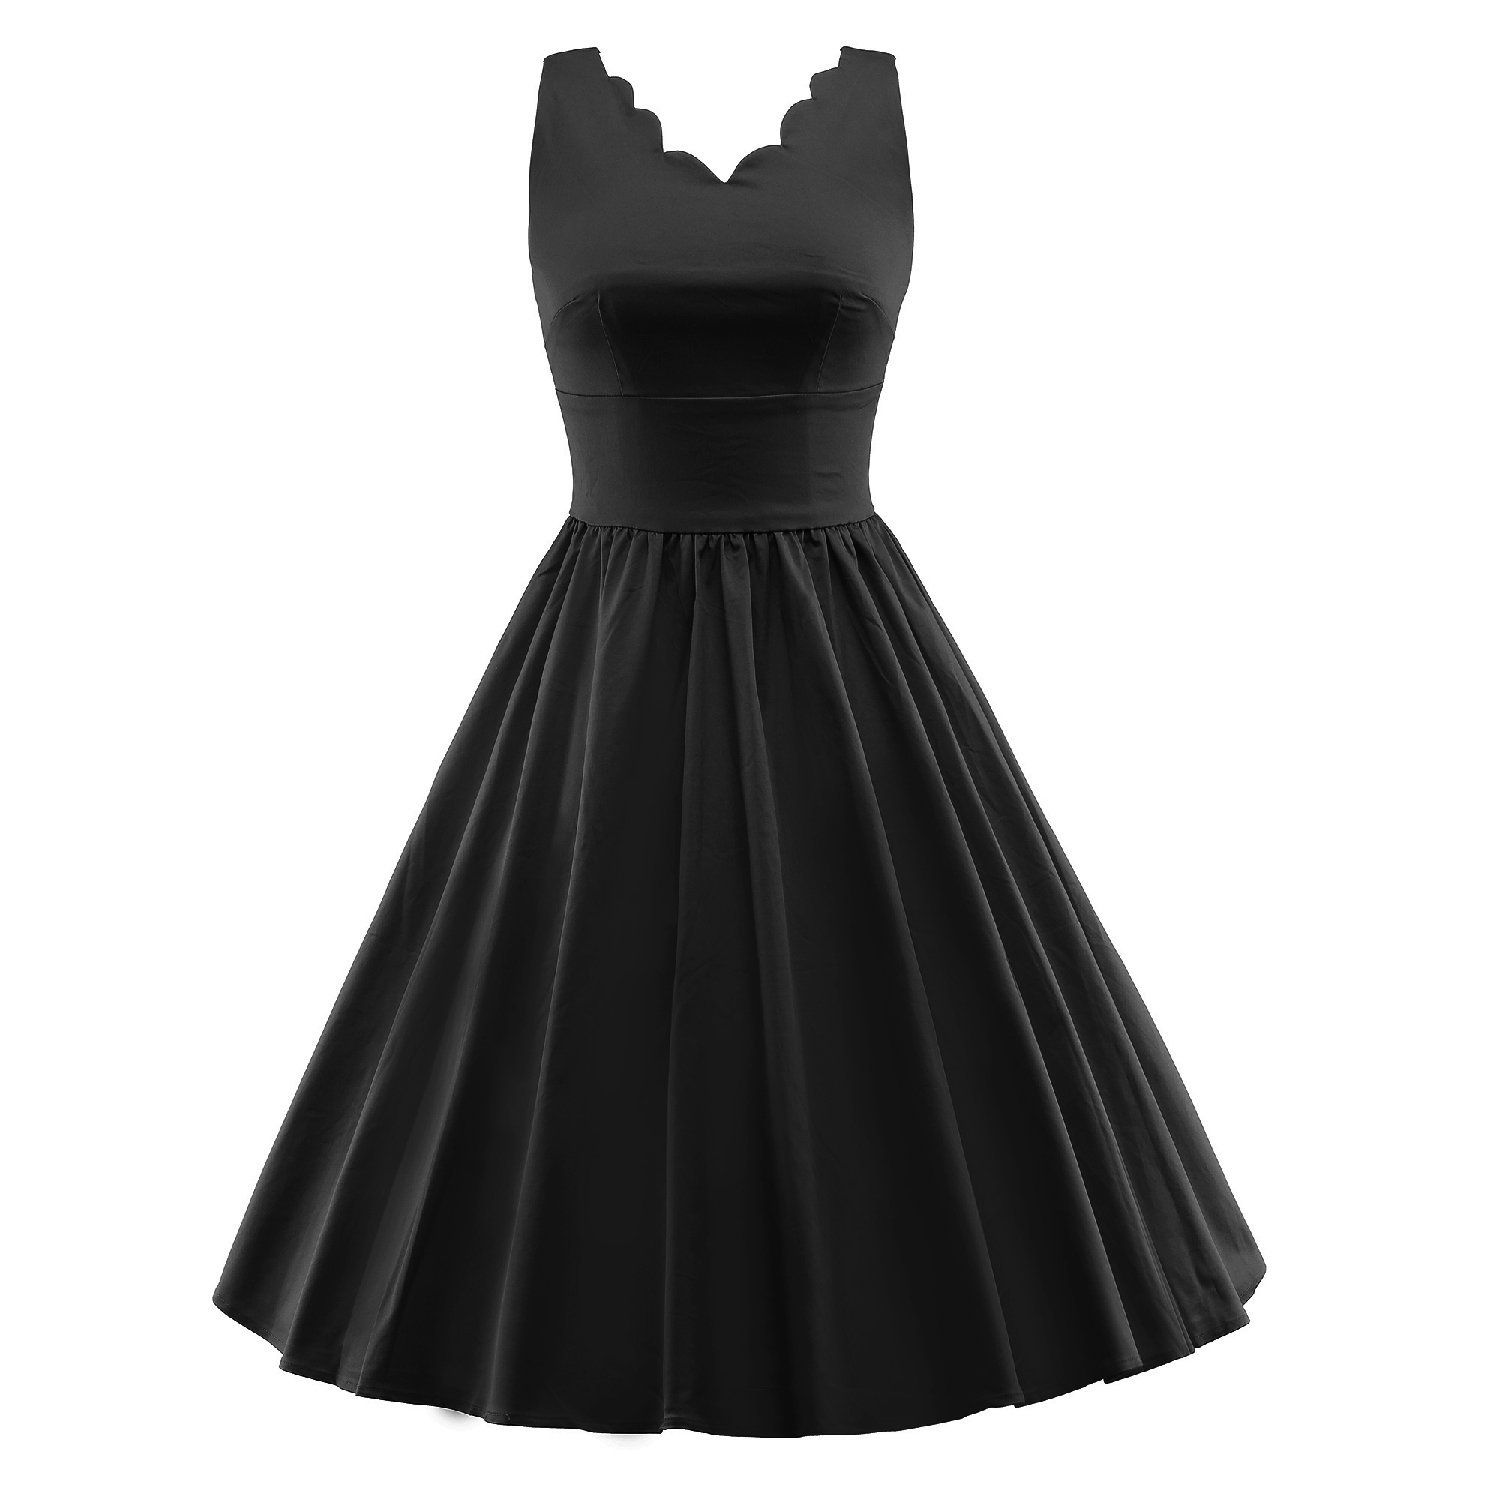 Luouse Retro V Neck Sleeveless Vintage 50 S 60 S Cocktail Party Swing Dress Unbelievable Item Fit And Flare Cocktail Dress Rockabilly Dress Vintage Dresses [ 1500 x 1500 Pixel ]